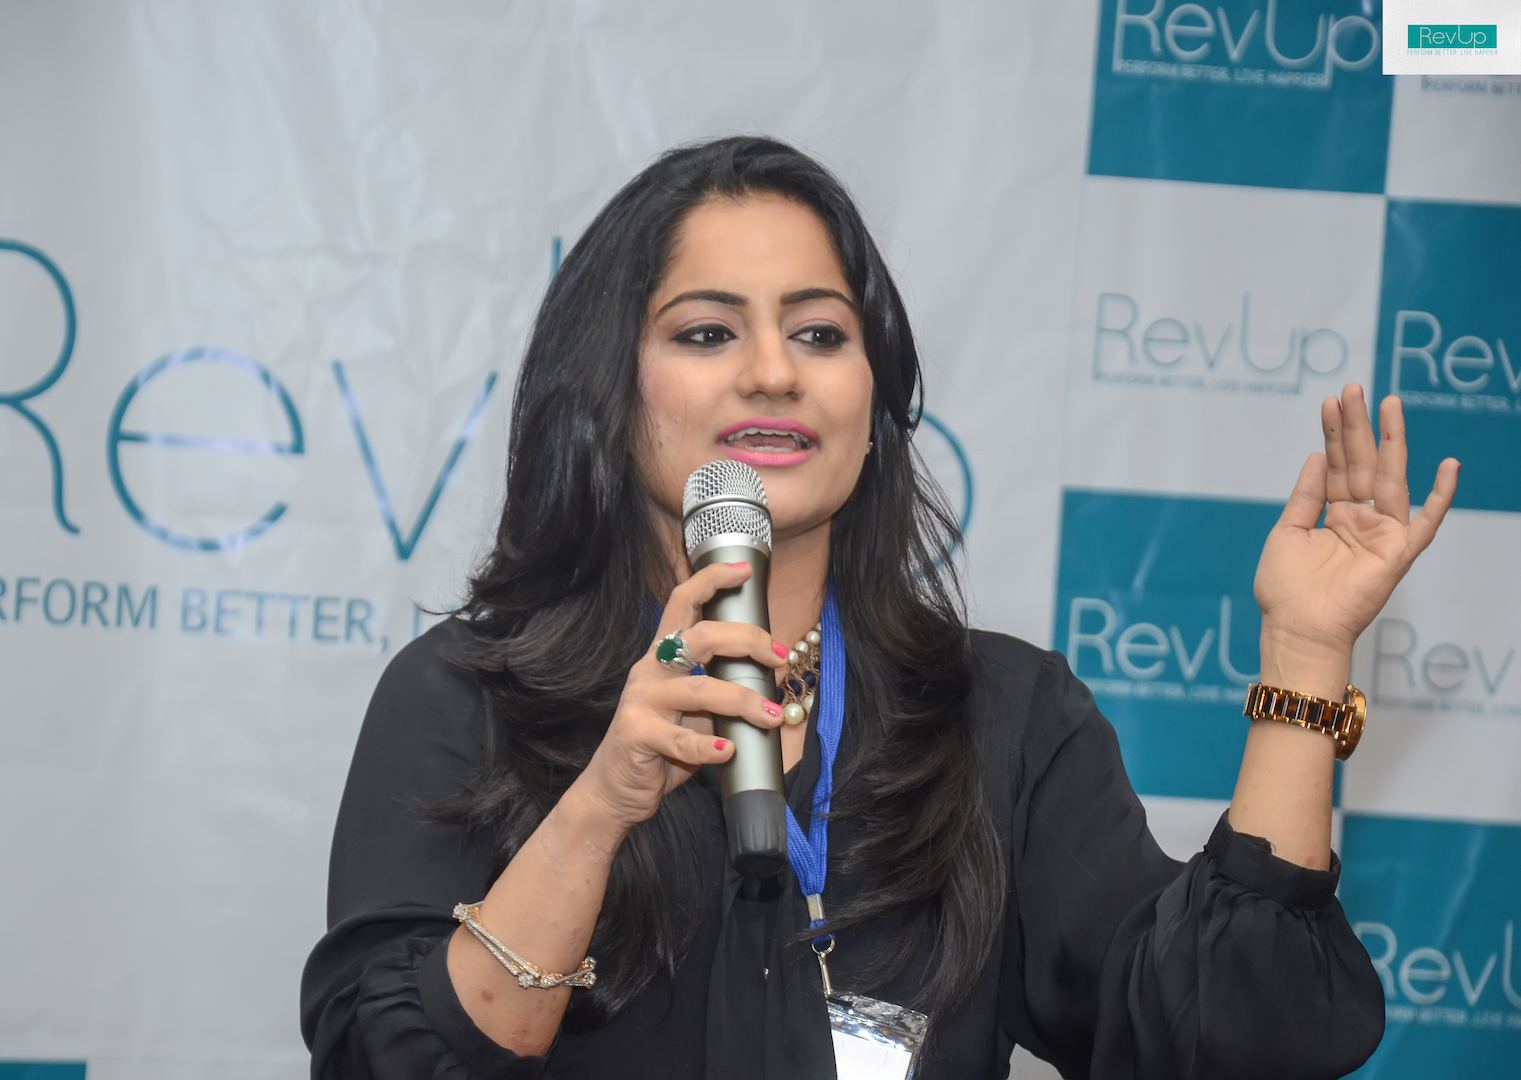 Nancy Juneja, Revup Life Skill Unit